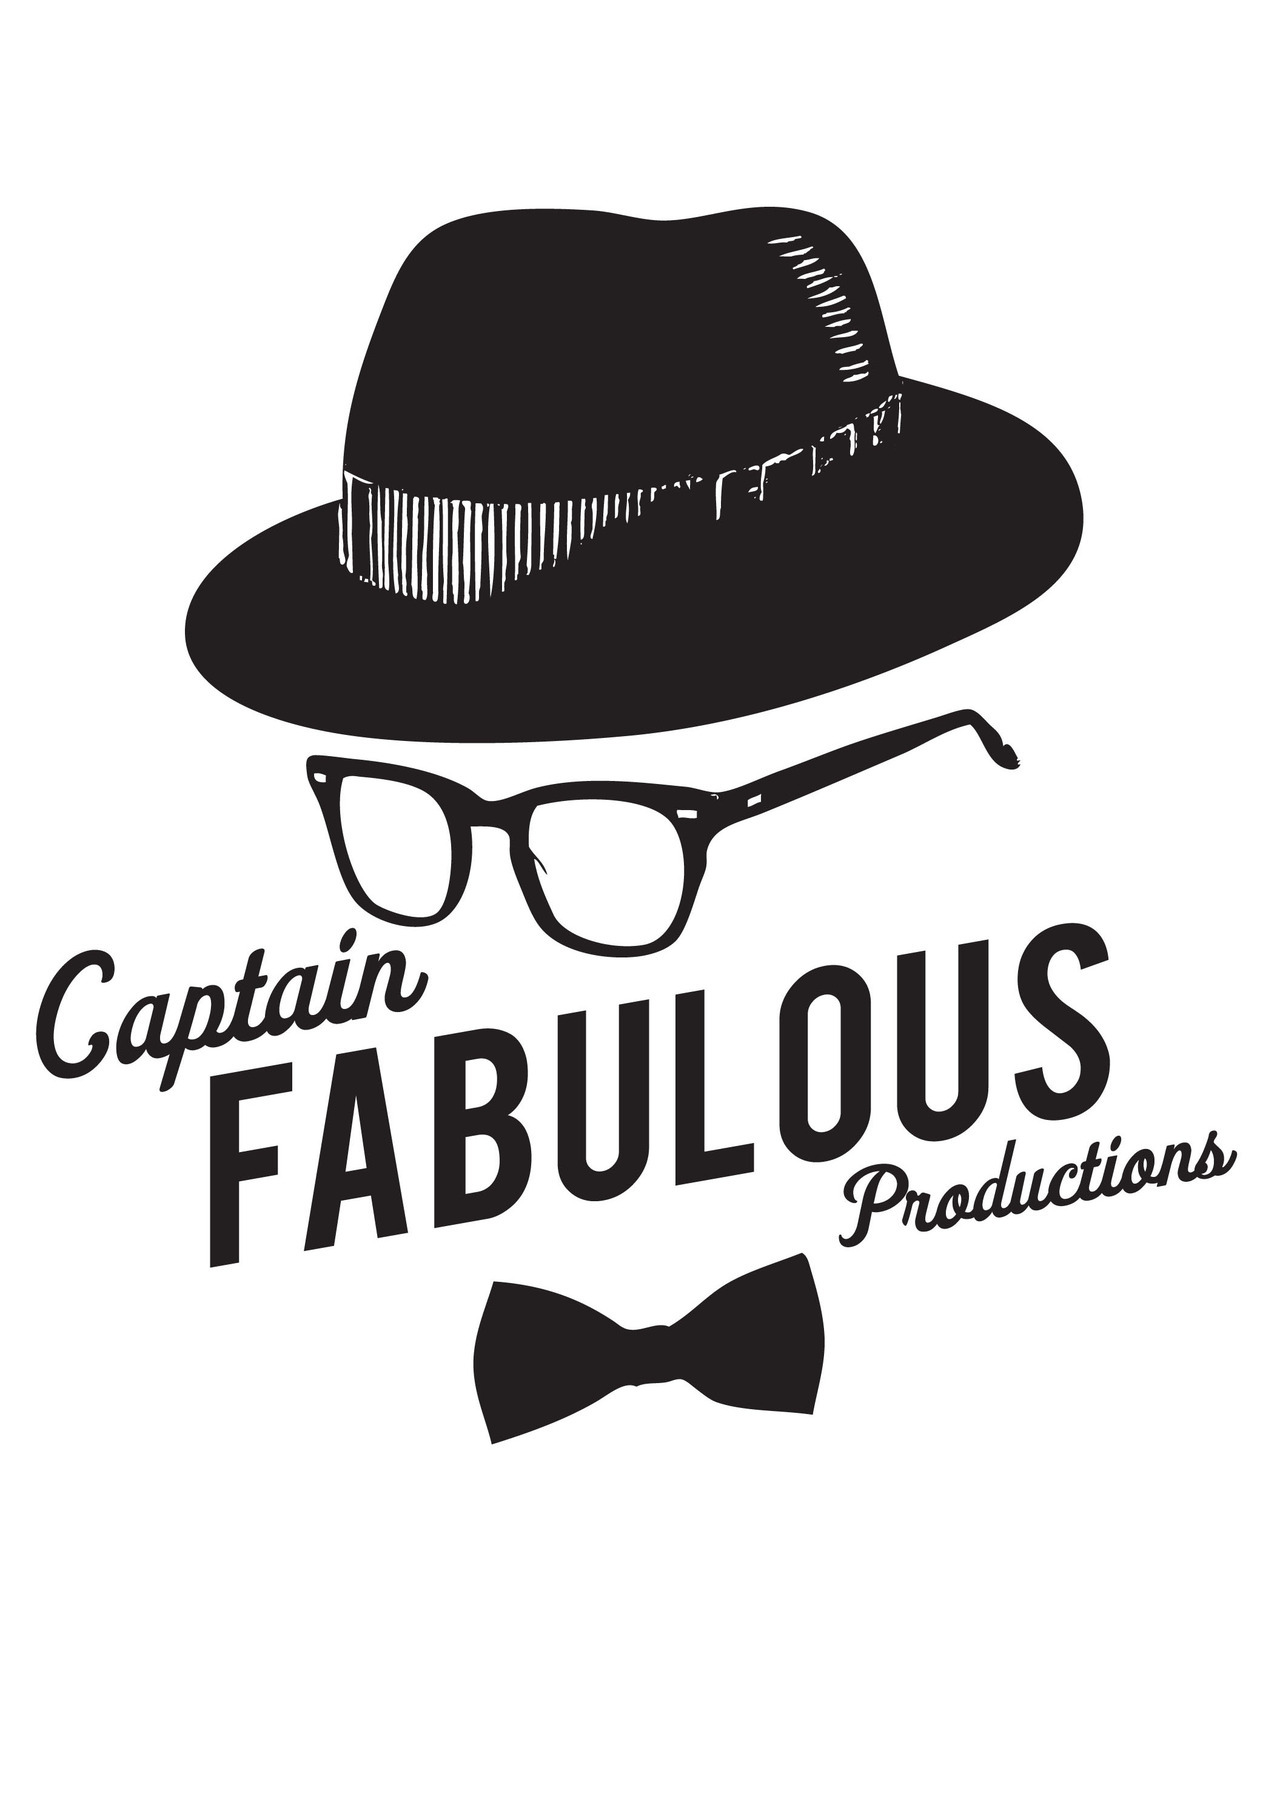 Captain Fabulous A new logo and identity project we've been working on.